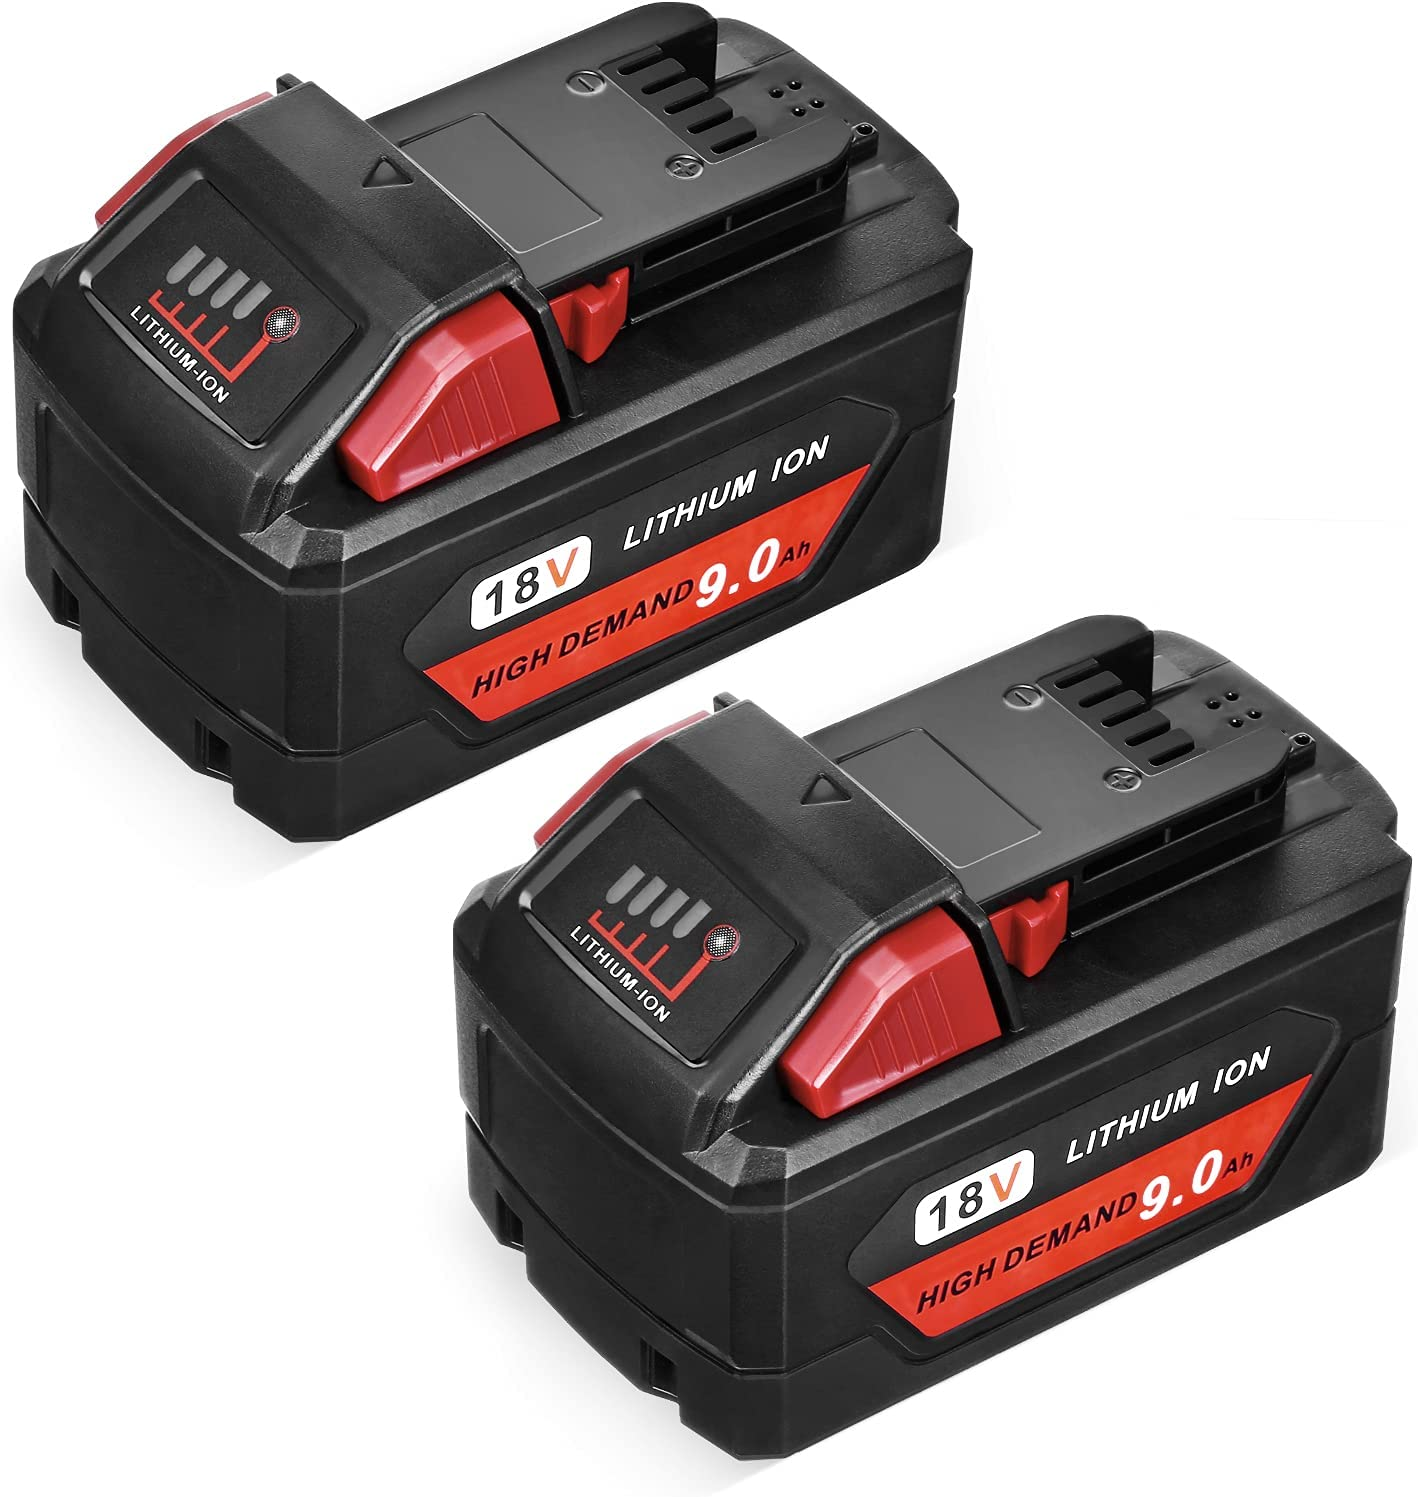 Abaige 9.0Ah 返品不可 High Output Lithium 正規販売店 for Milwau M18 Battery Replace